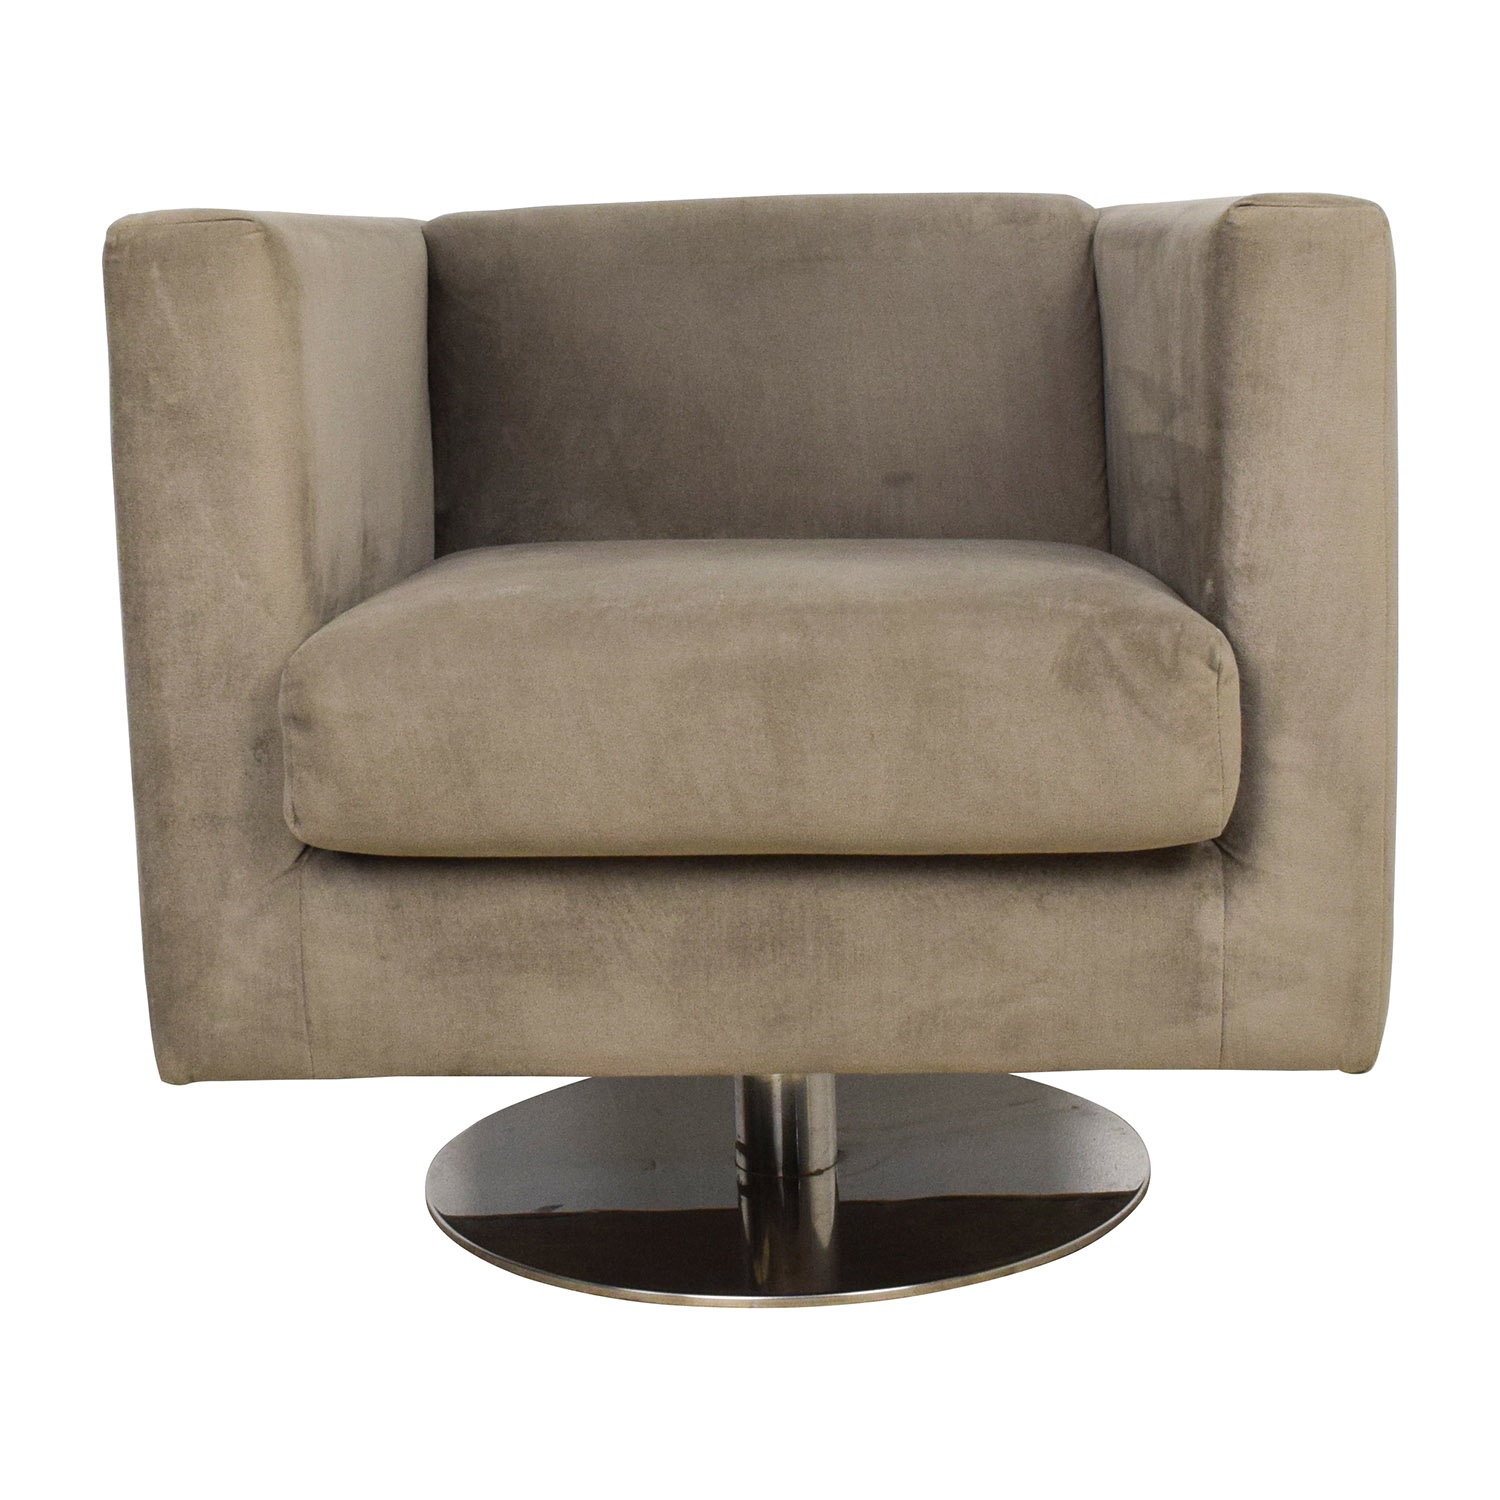 Swival Chairs 79 Off Rowe Rowe Grey Swivel Chair Chairs